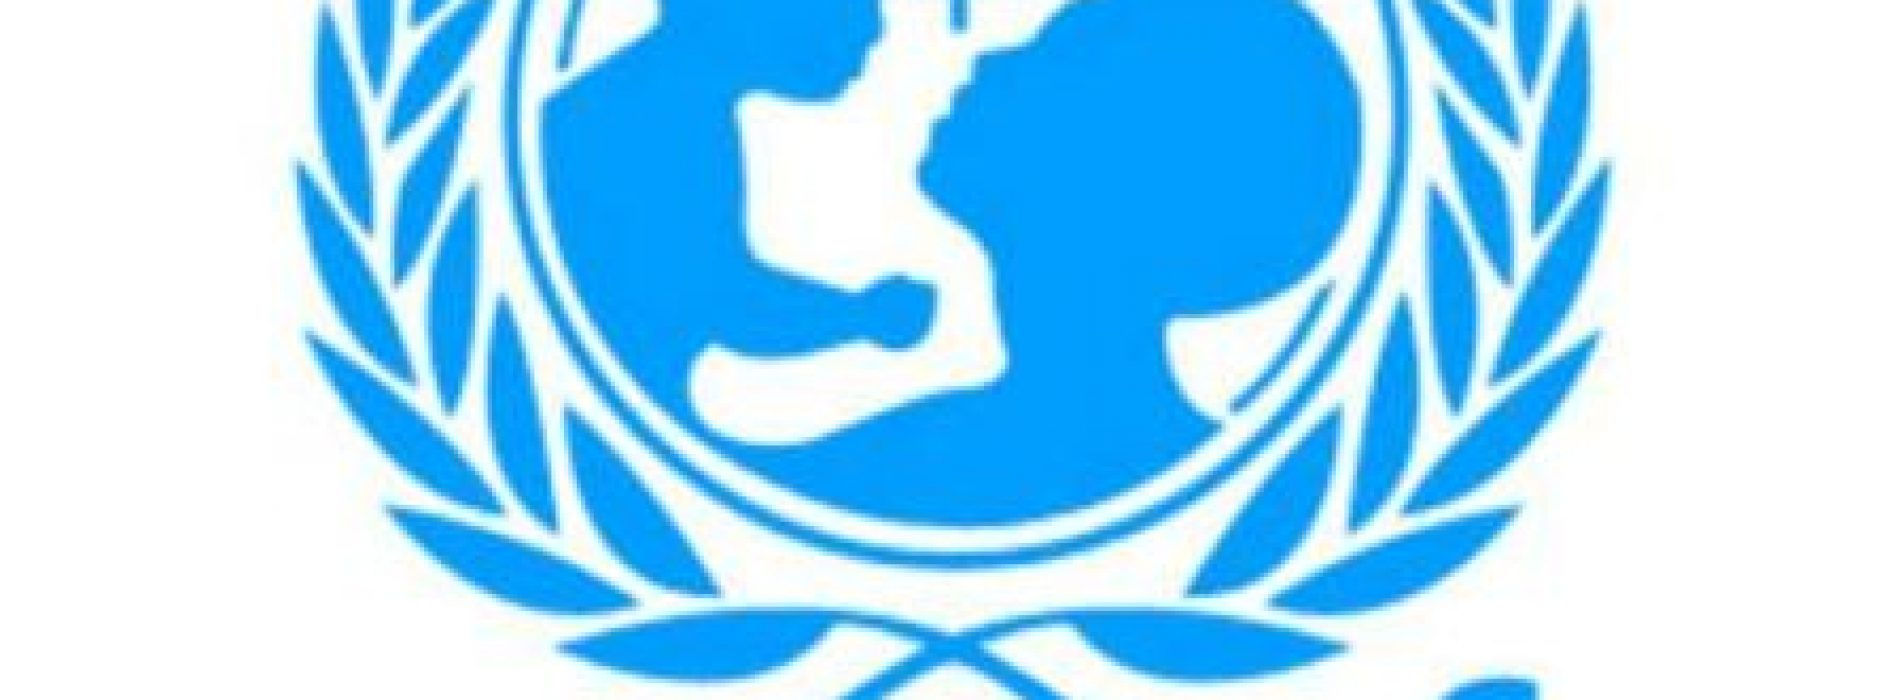 COVID-19: UNICEF urges public to seek information from trusted sources